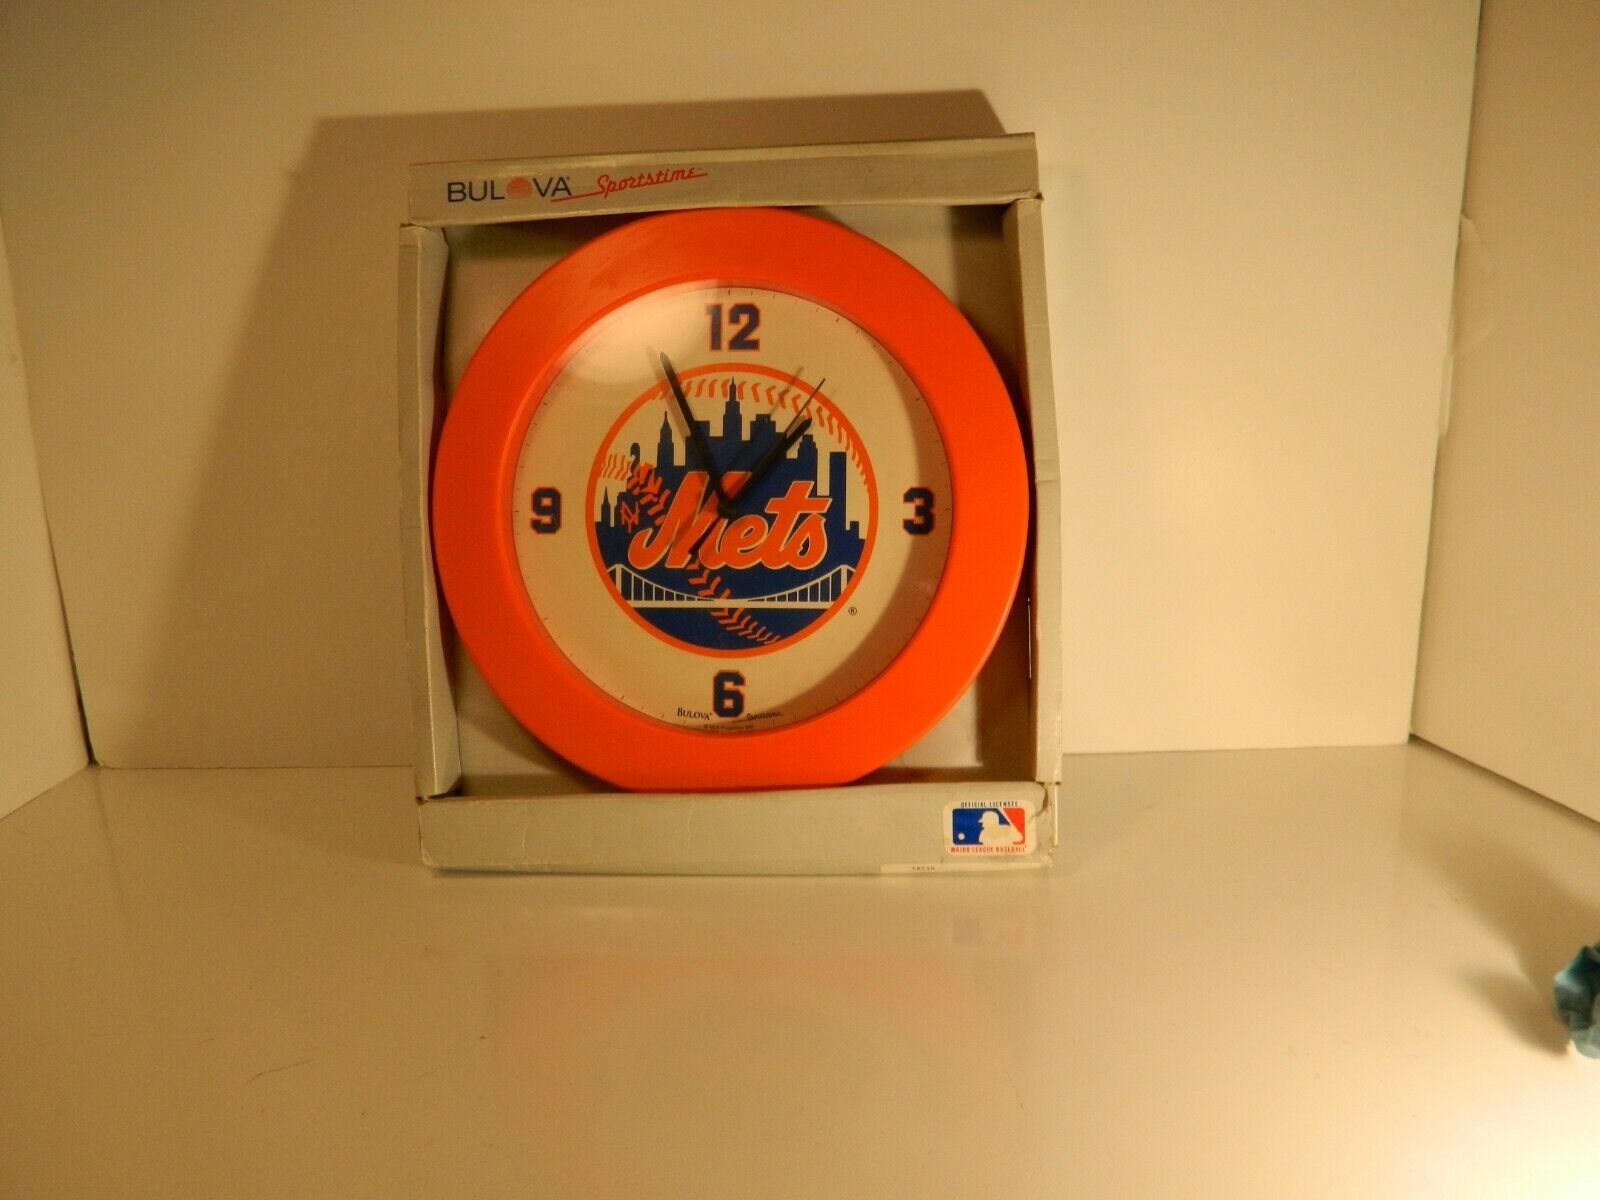 bulova sports time New York METS wall clock tested and works